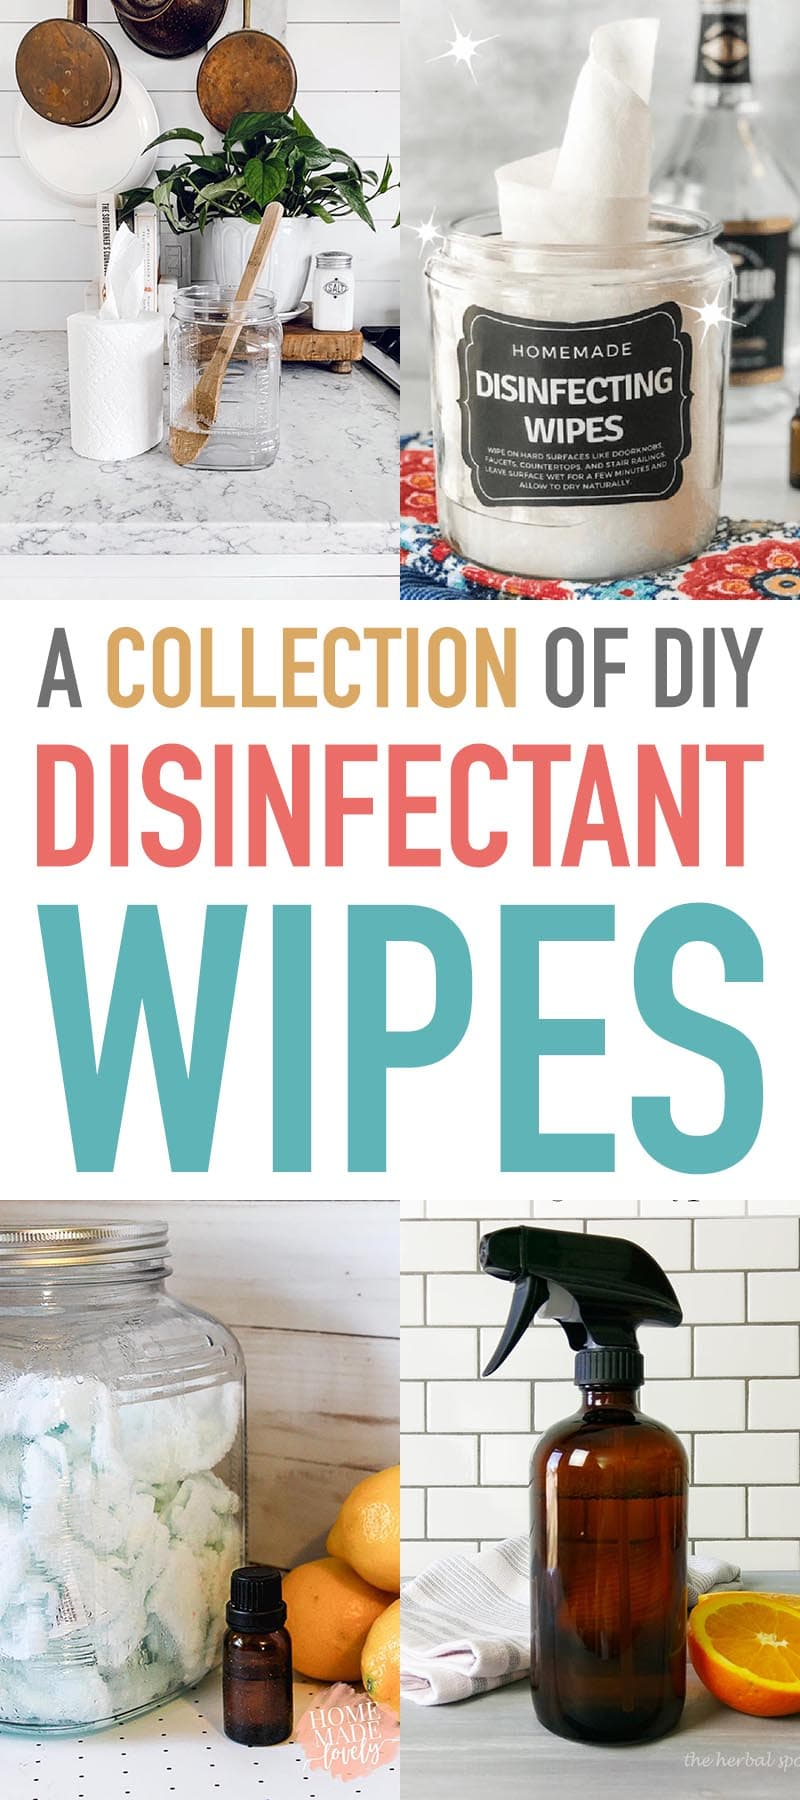 This Collection of DIY Disinfectant Wipes will help you keep all those important areas of the home and car clean and germ free.  They will help stop the spread.